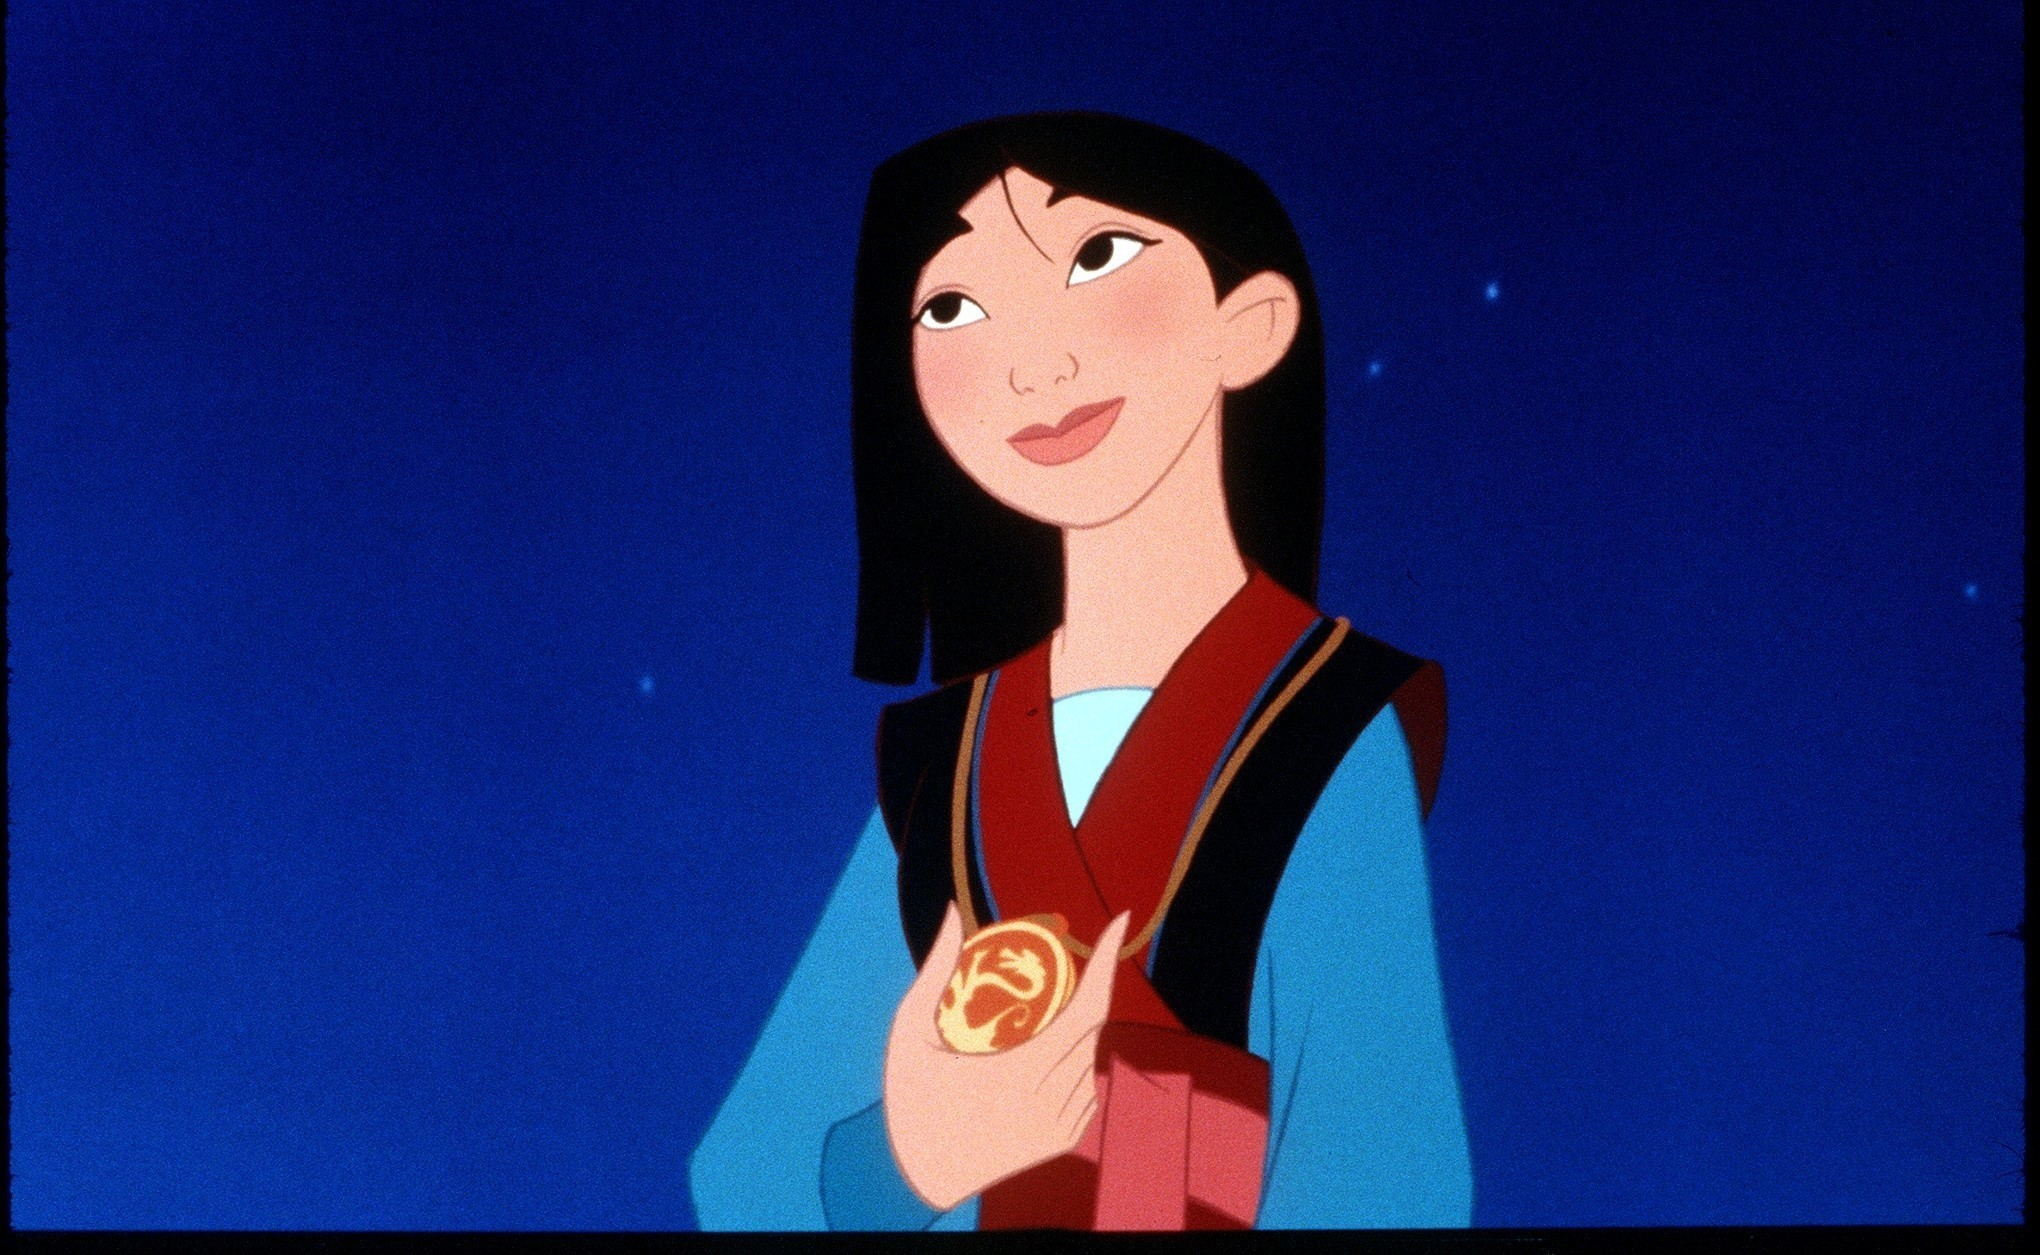 Pretty Girl Cartoon Wallpaper Disney S Live Action Mulan Sounds Like It Will Be Even